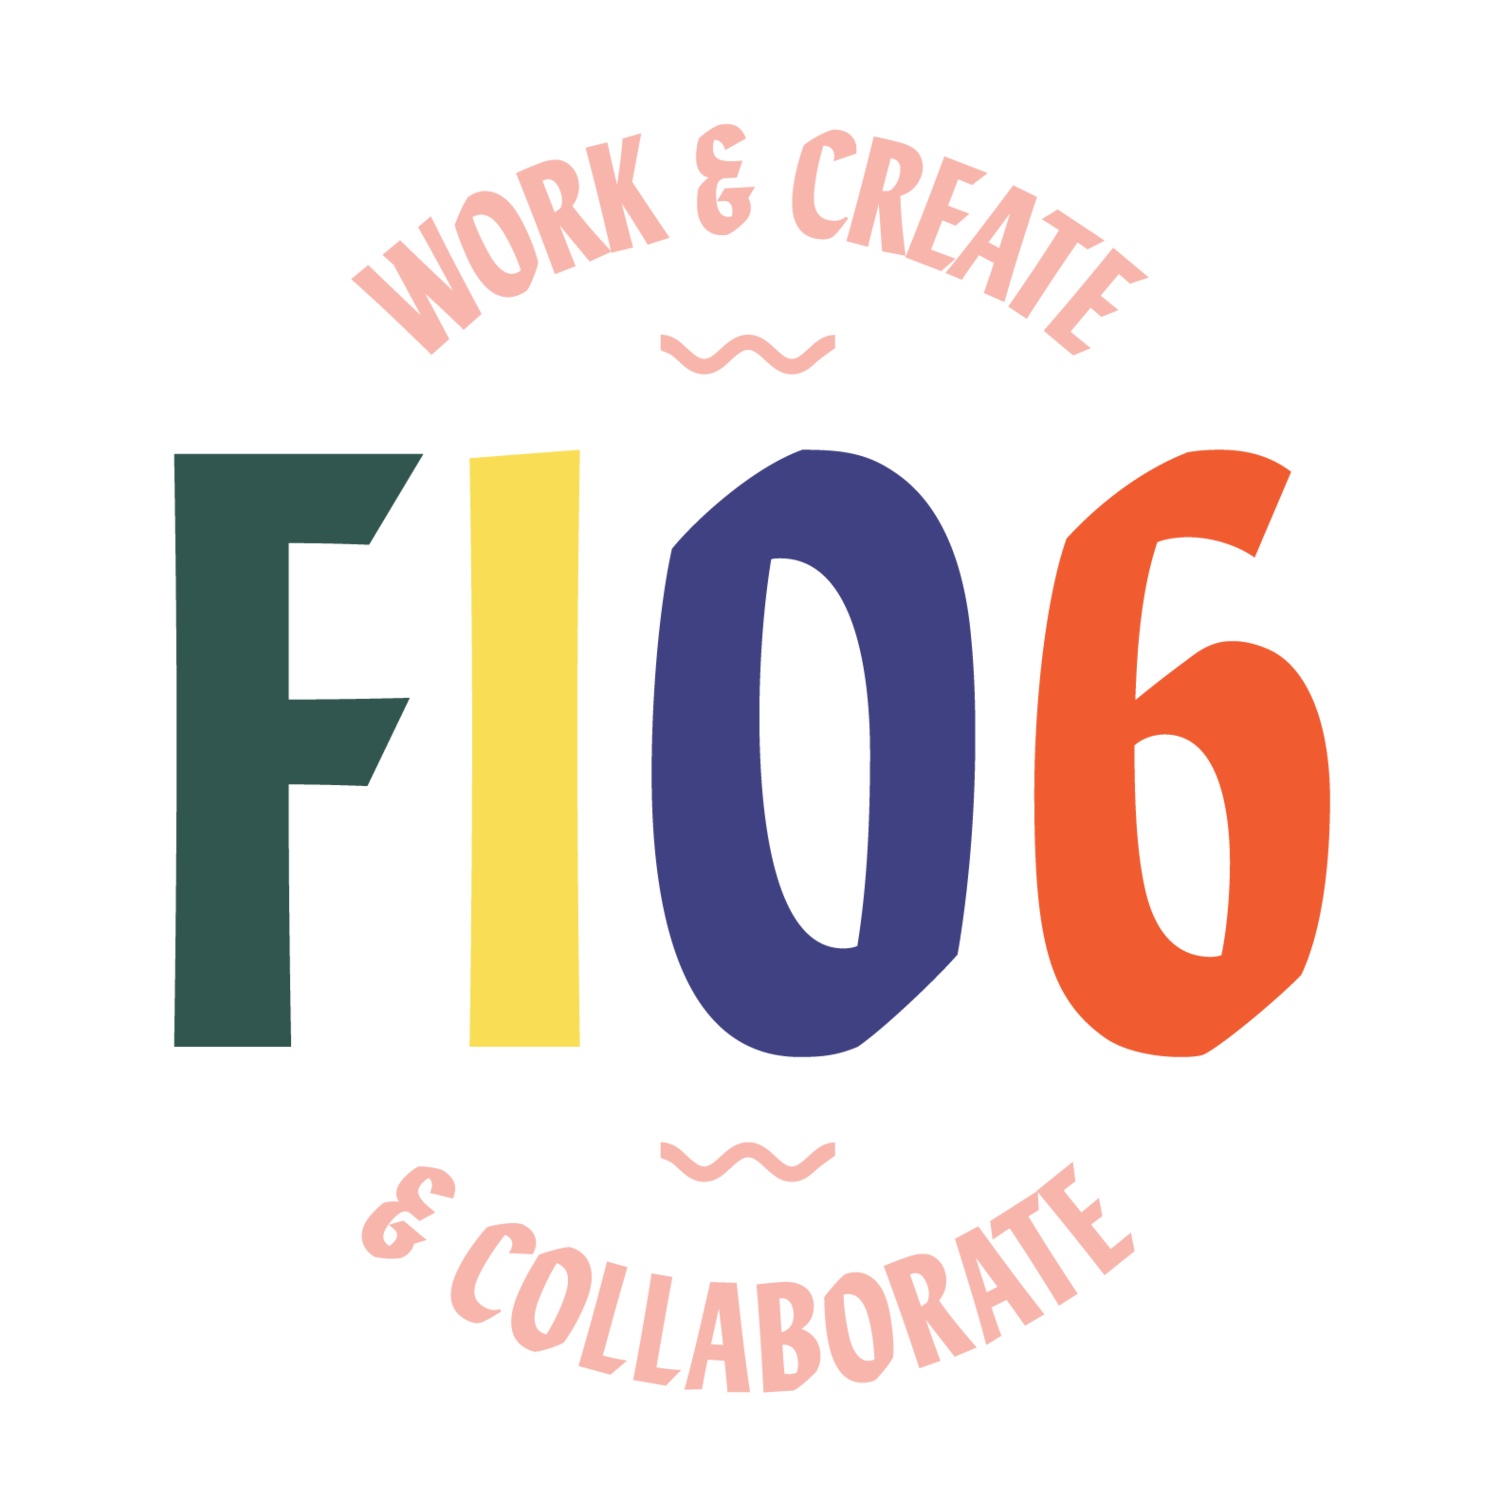 F106 Cowork Space